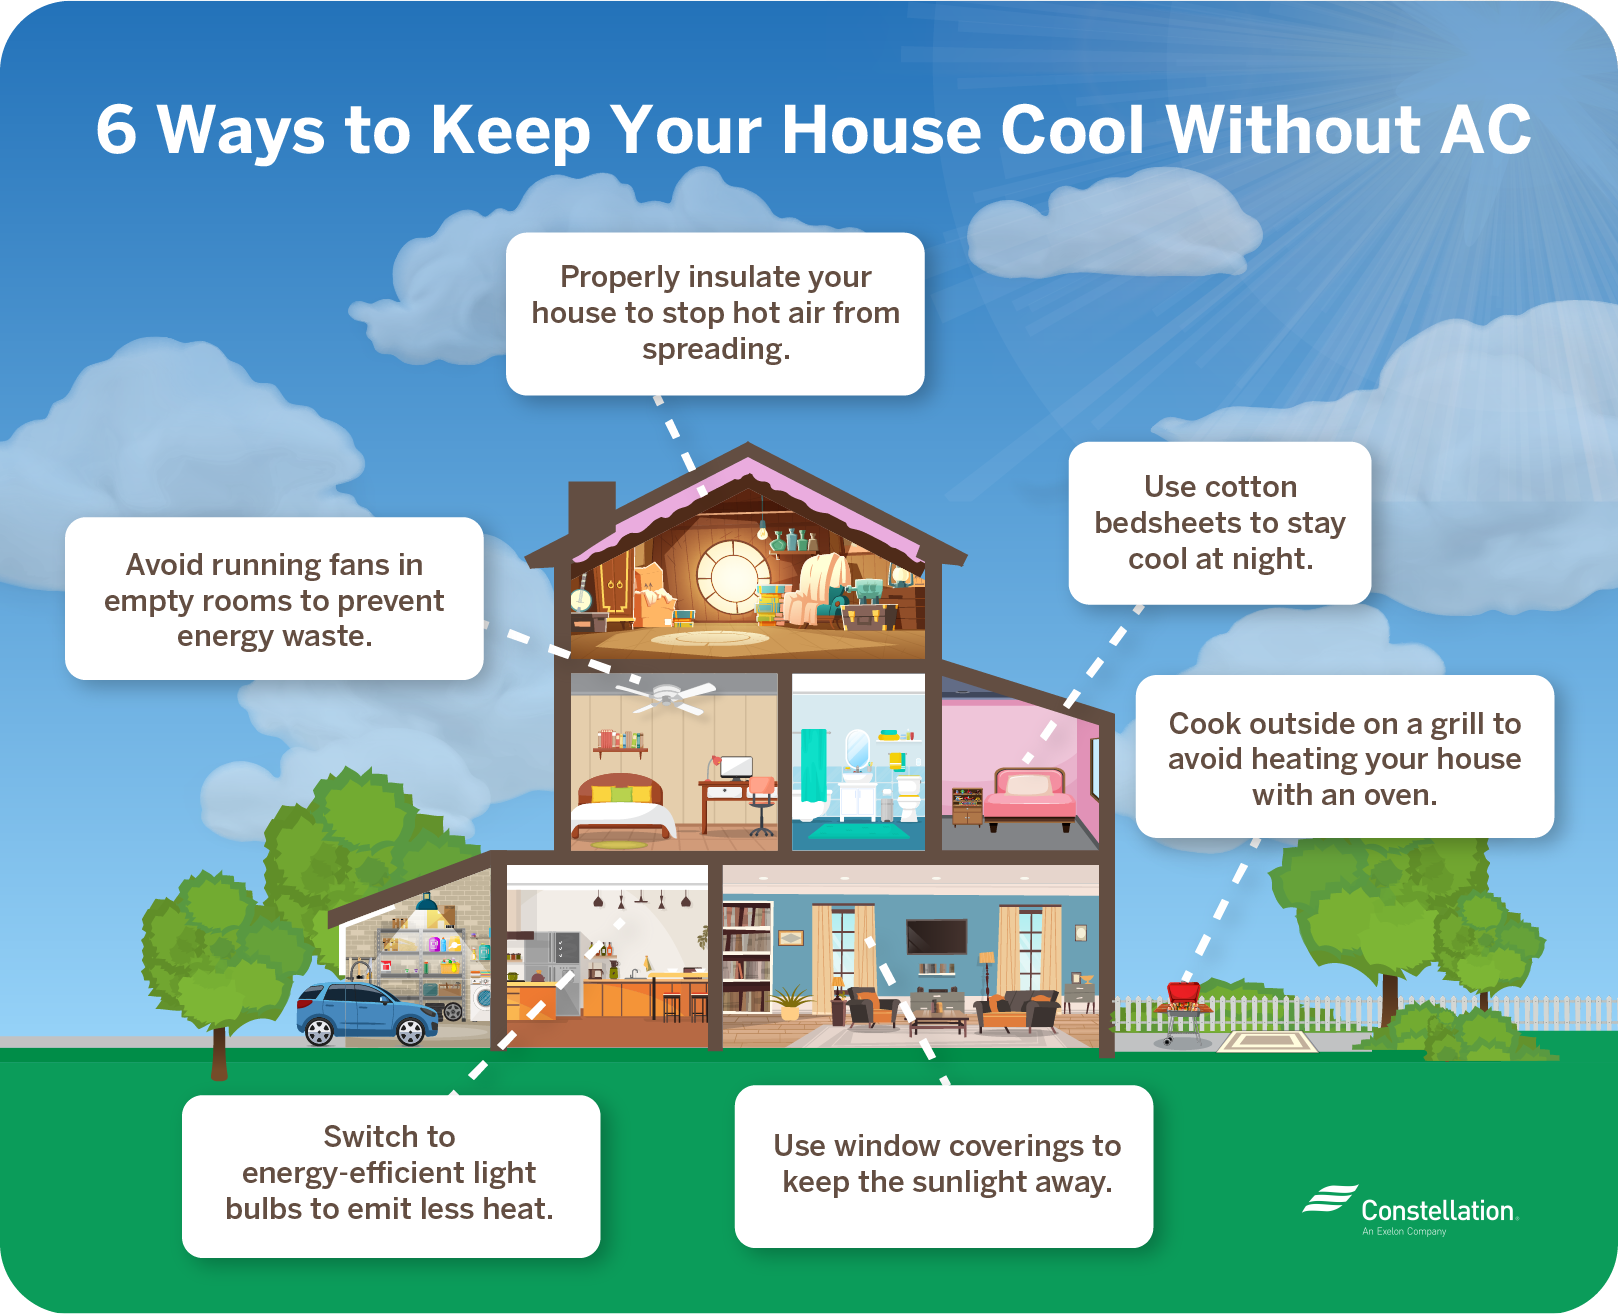 6 ways to keep your house cool without AC